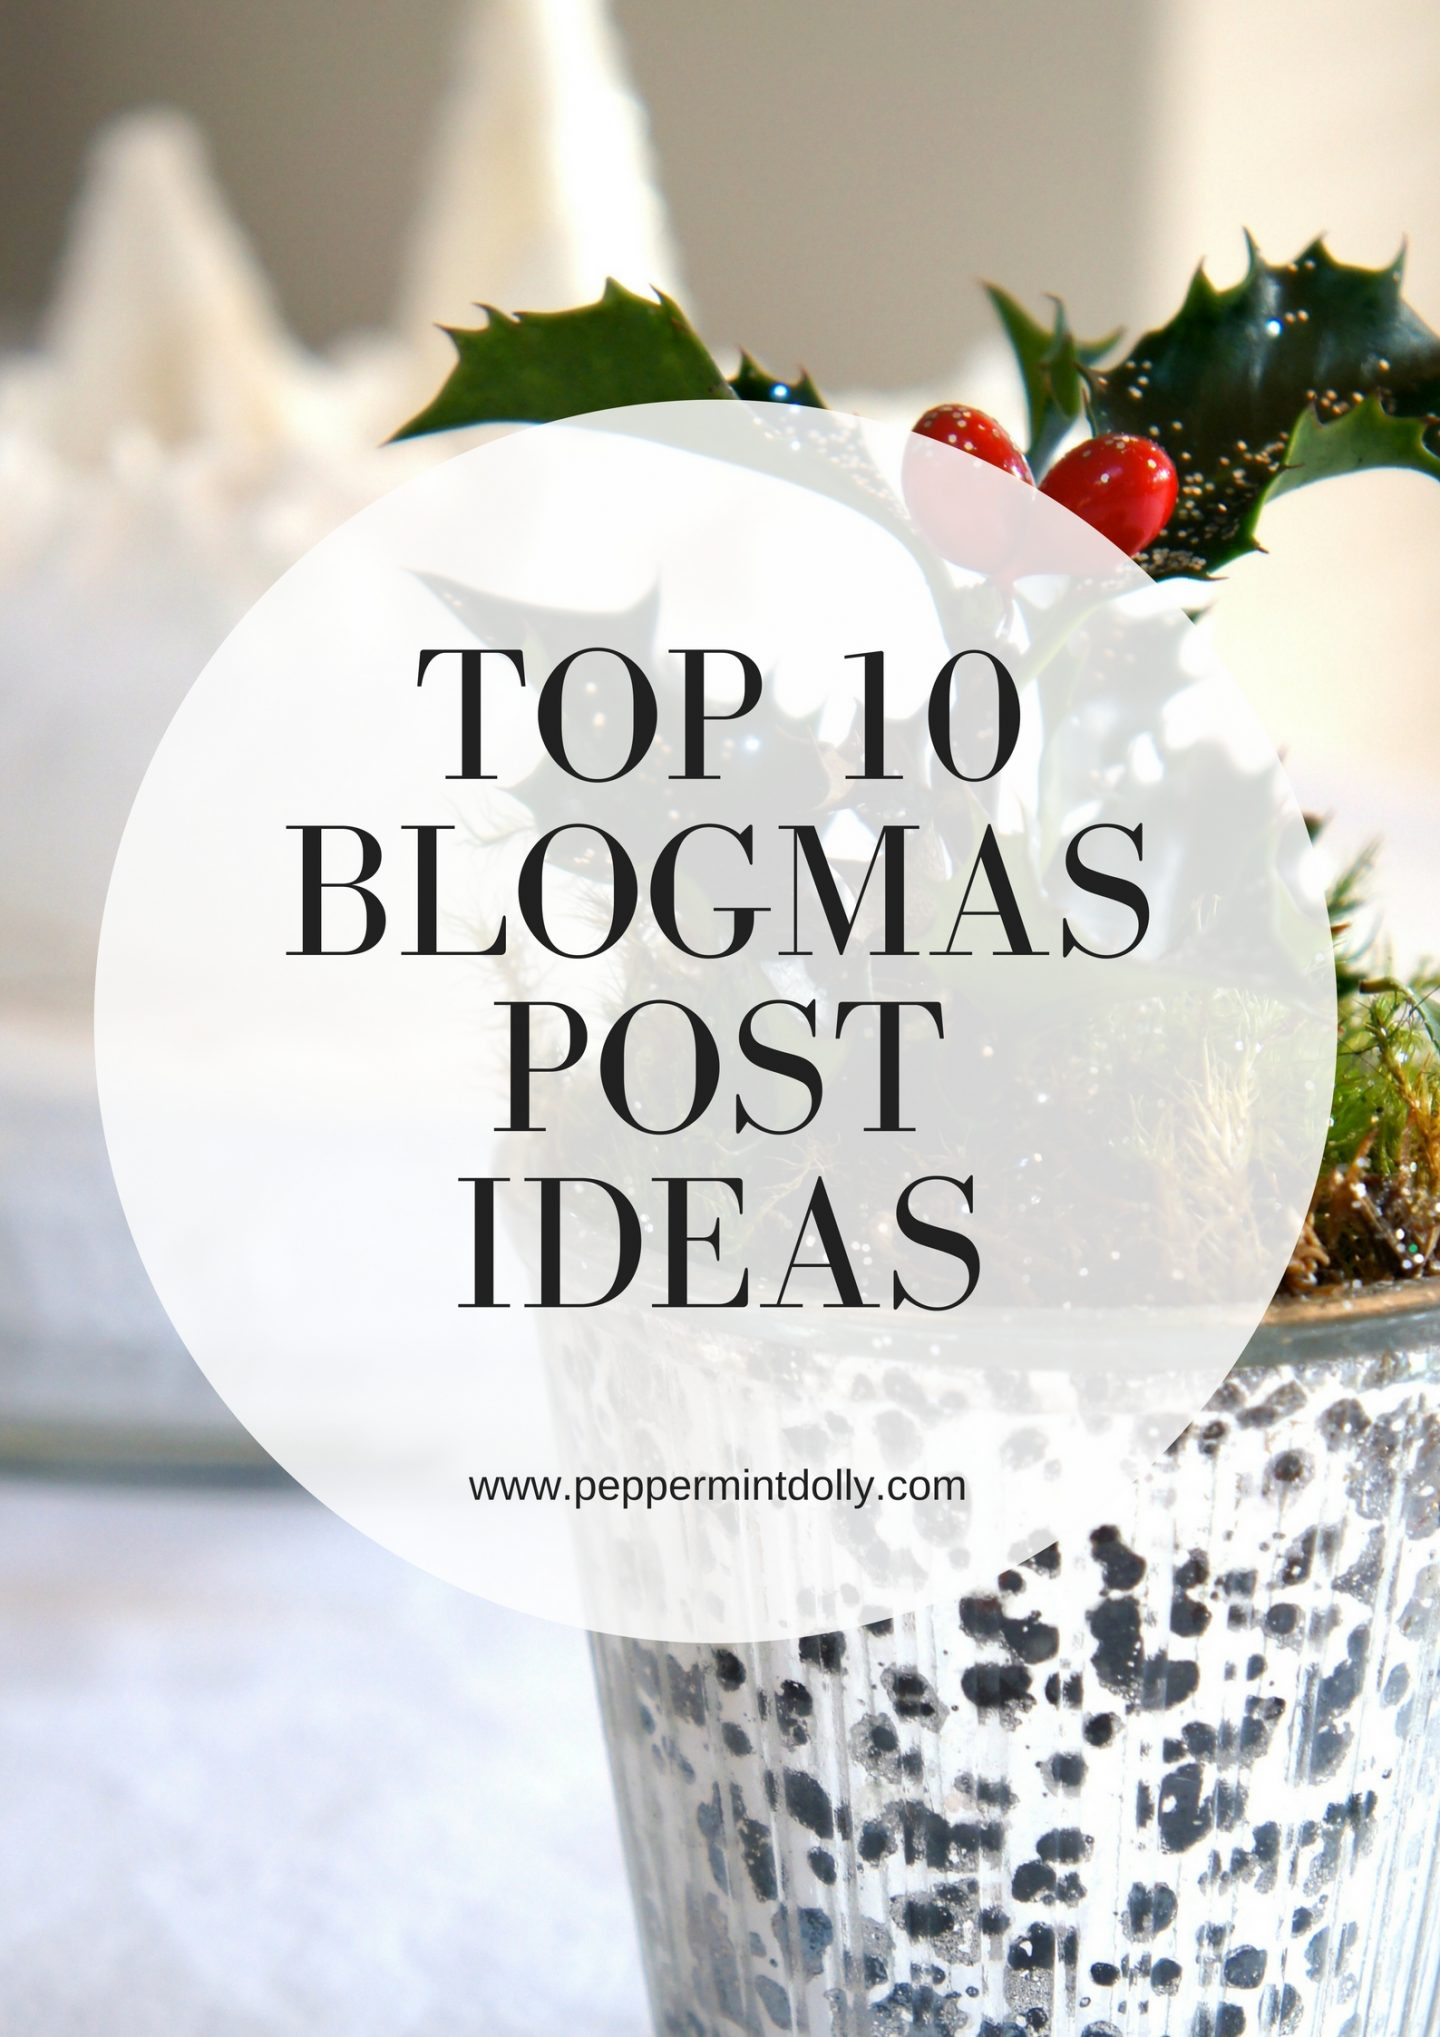 Top 10 Blogmas Post Ideas